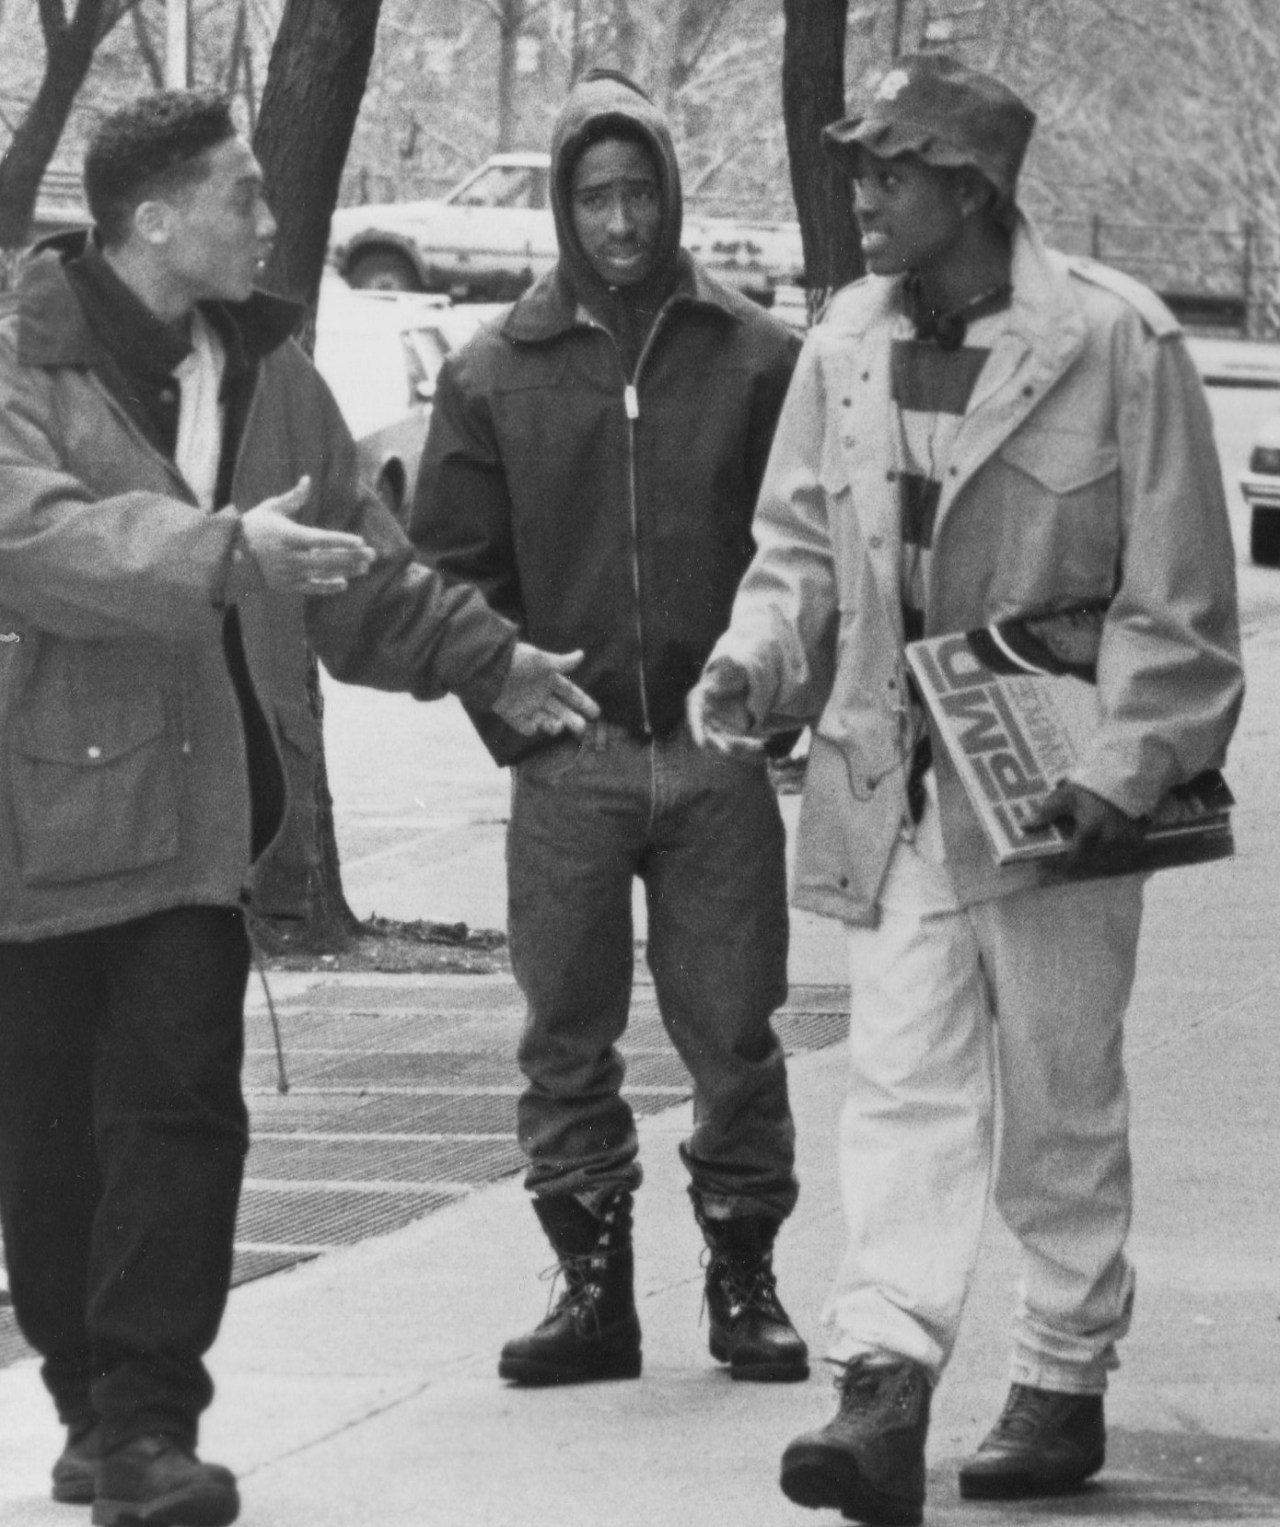 1992 with khalil kain and omar epps in juice viva la tupac